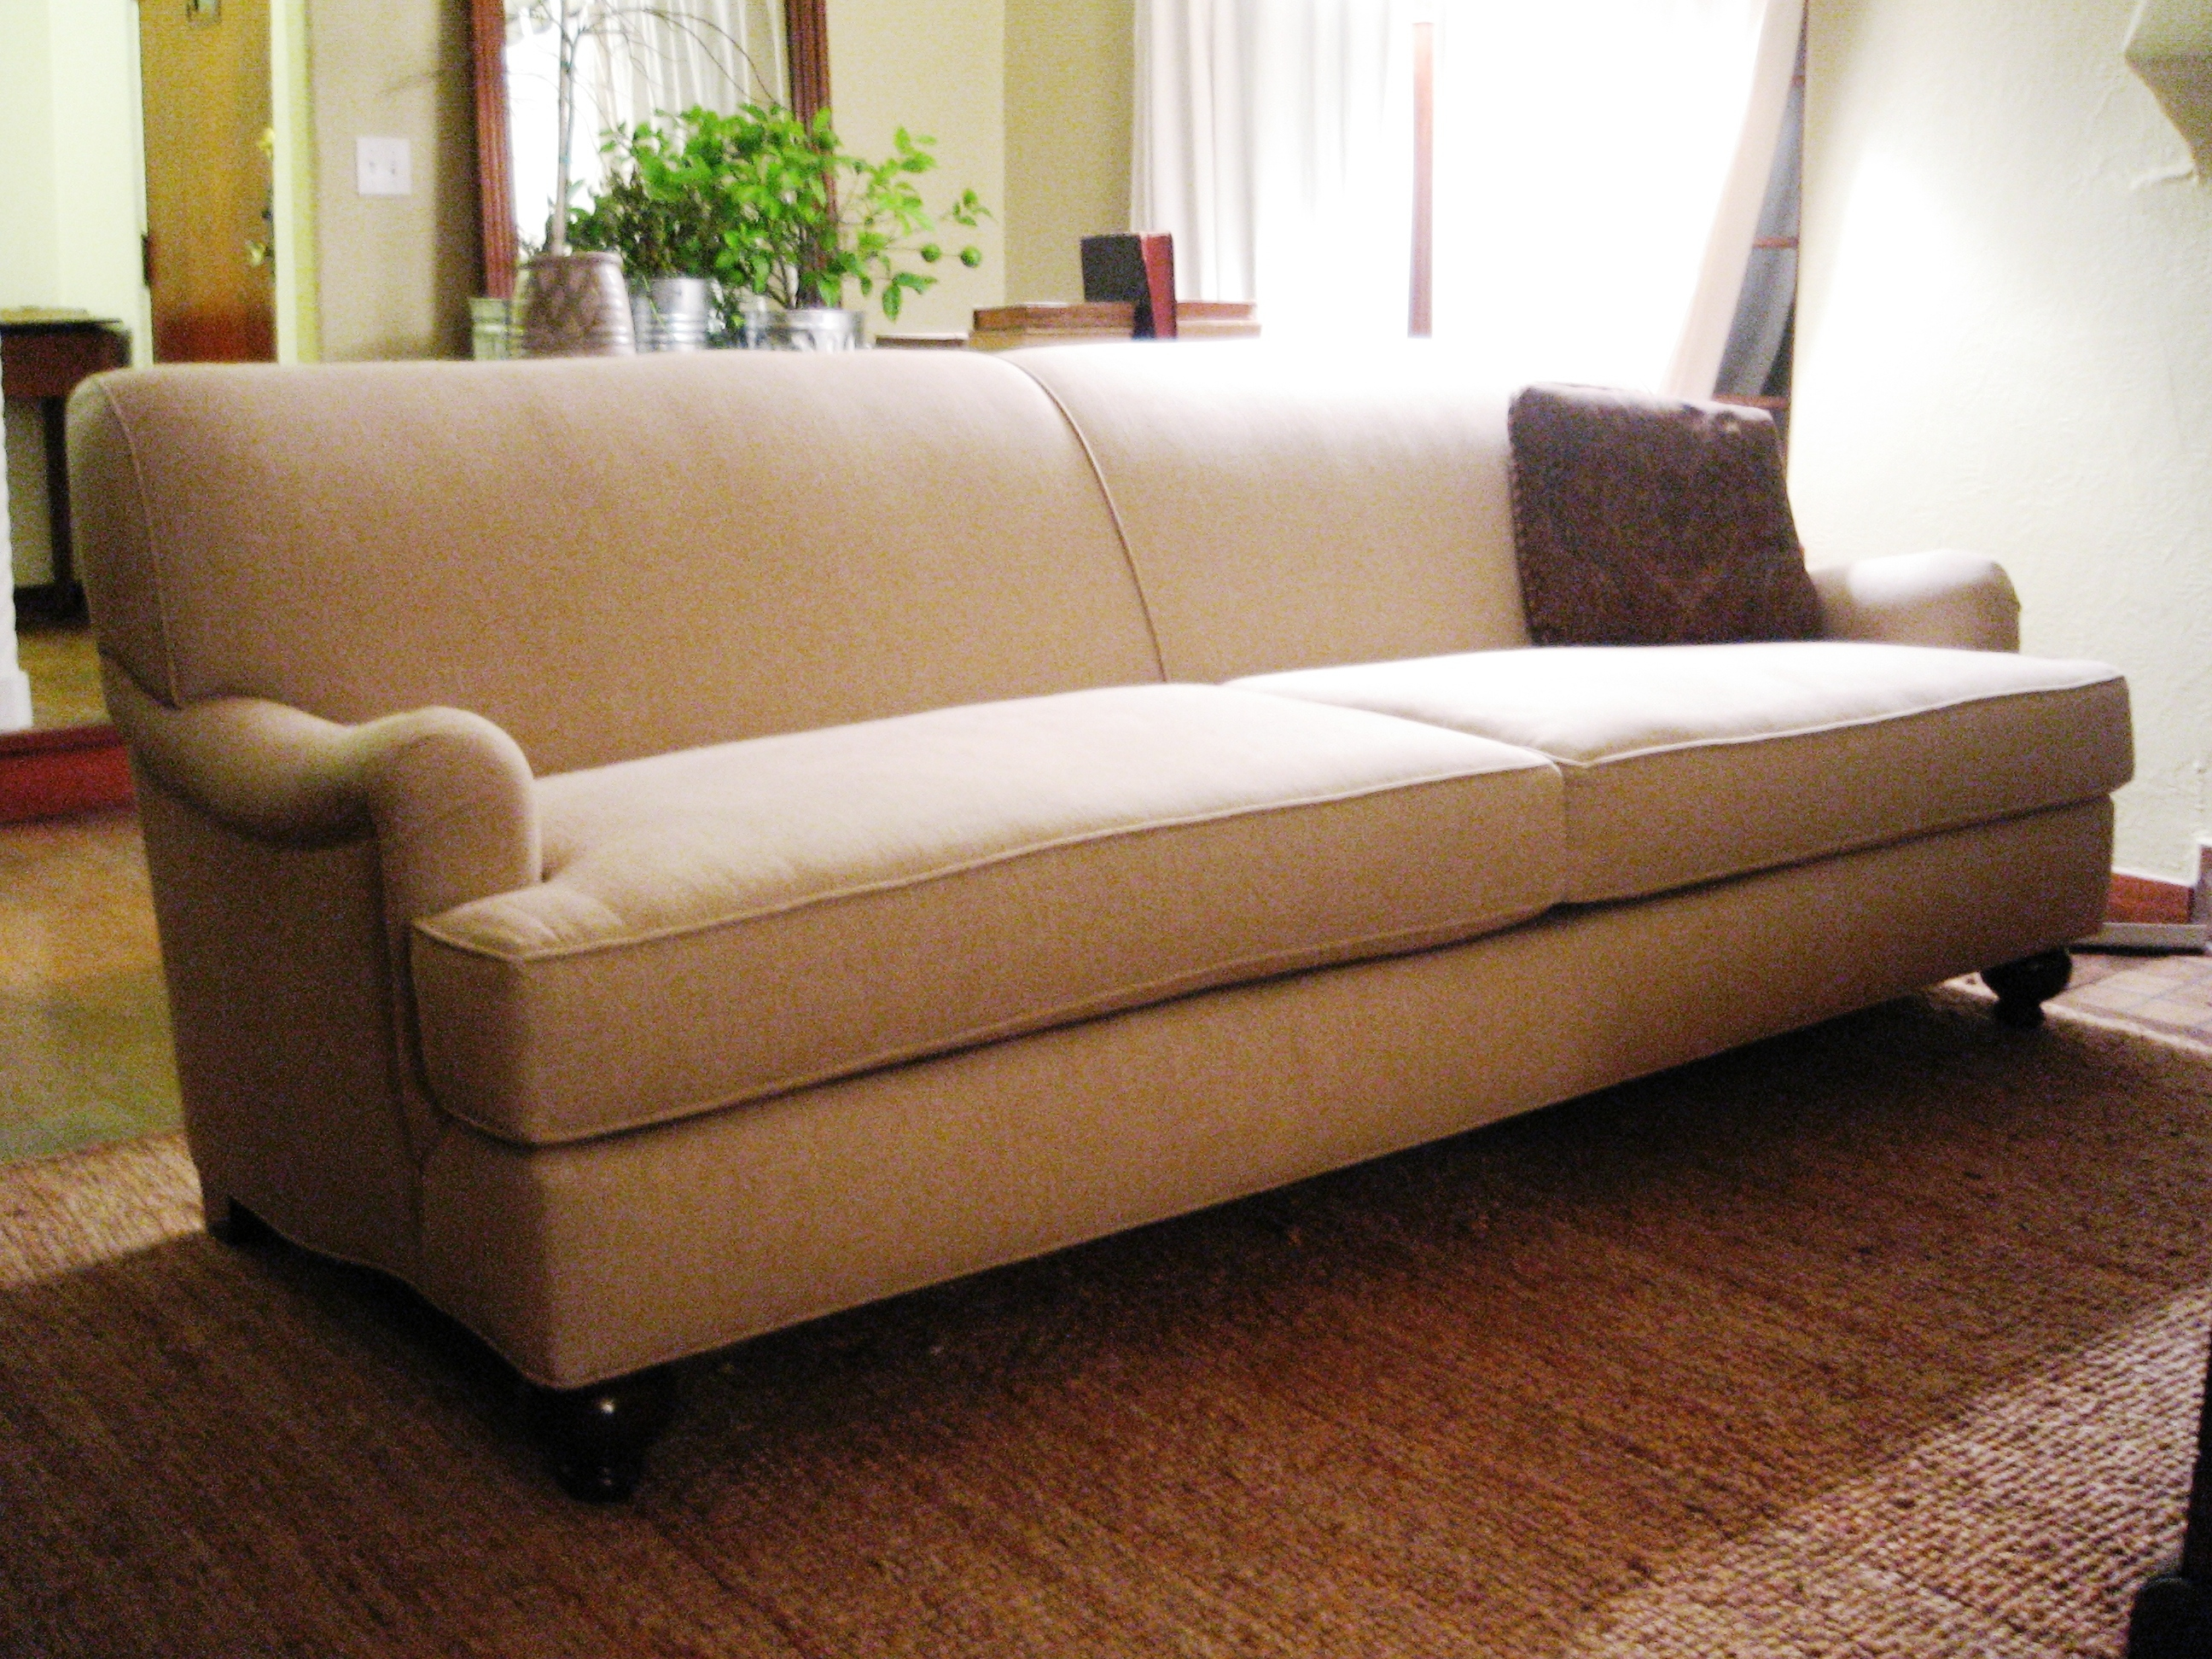 roll arm sofa canada pillows for white leather couch seattle | custom to the inch seating at non-custom ...